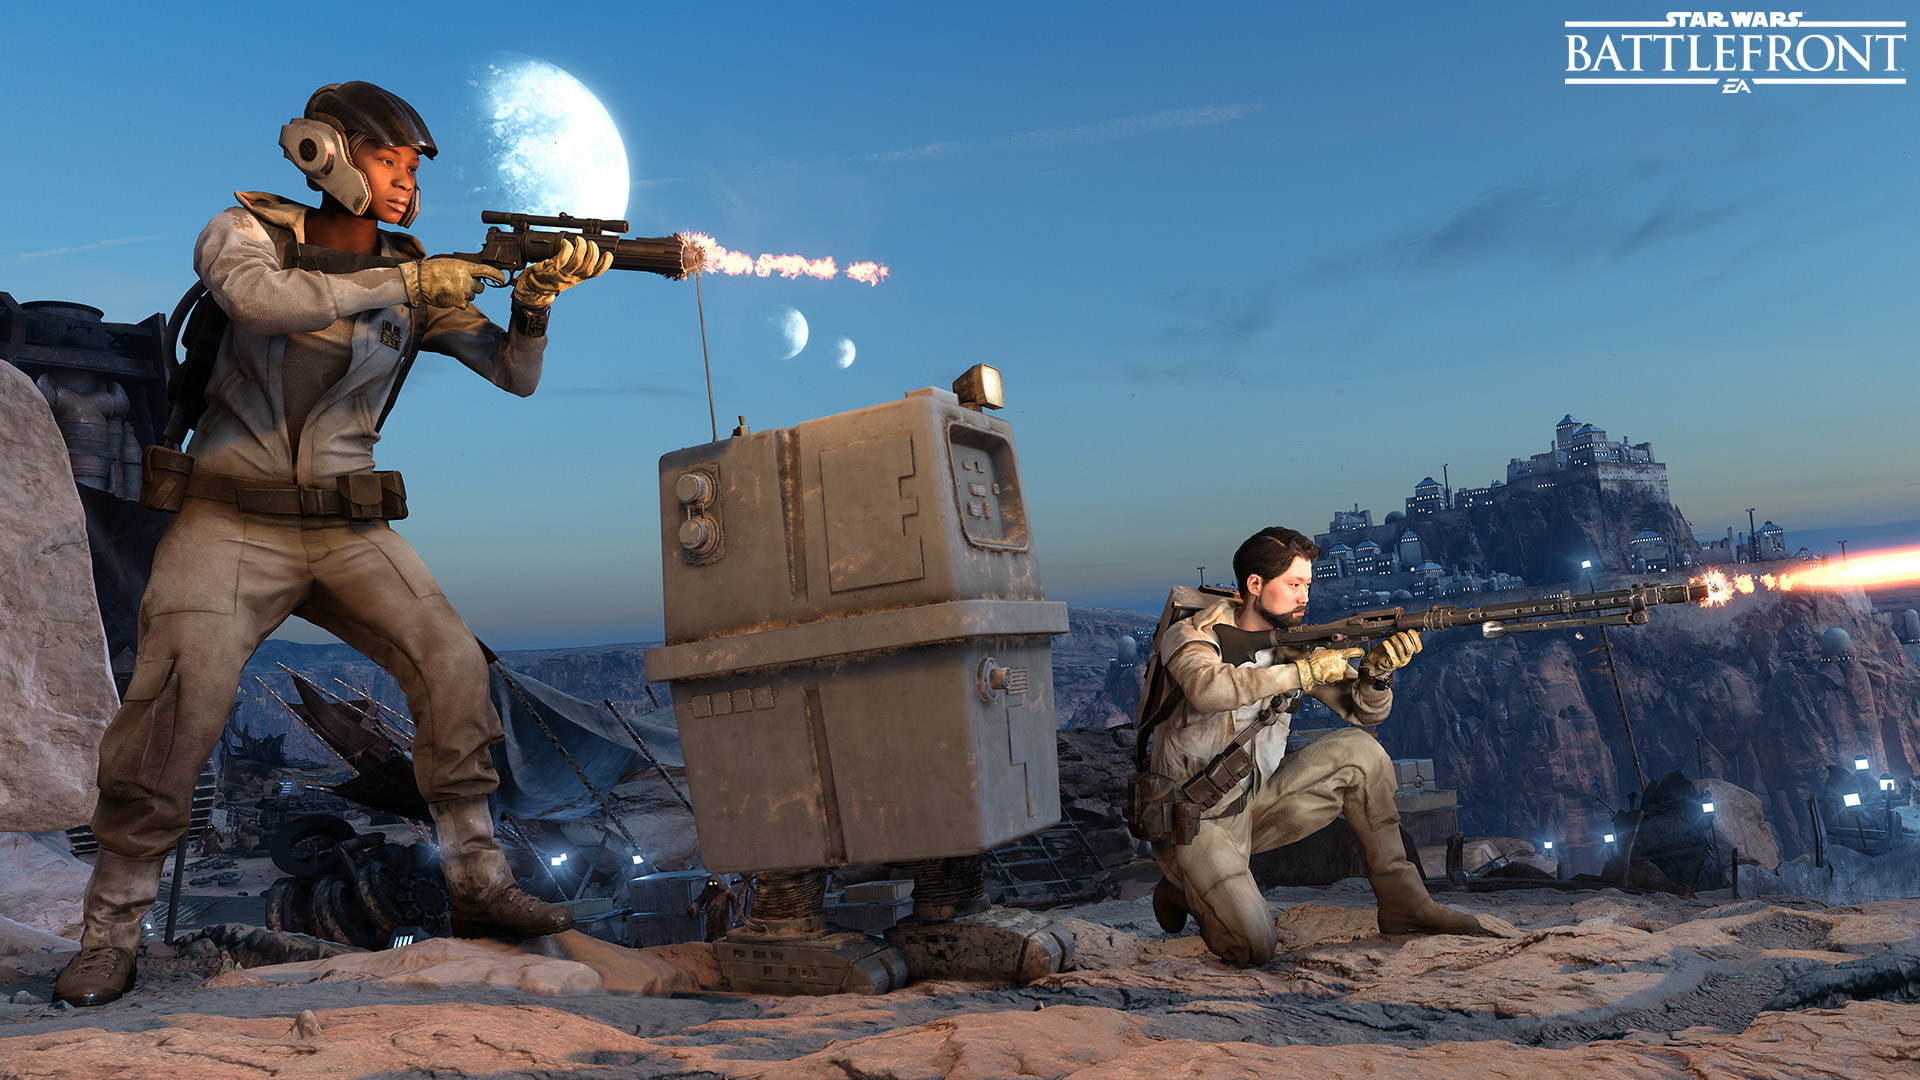 Star Wars Battlefront Text Dump Might Give Away New Weapons And Modes Gamesradar